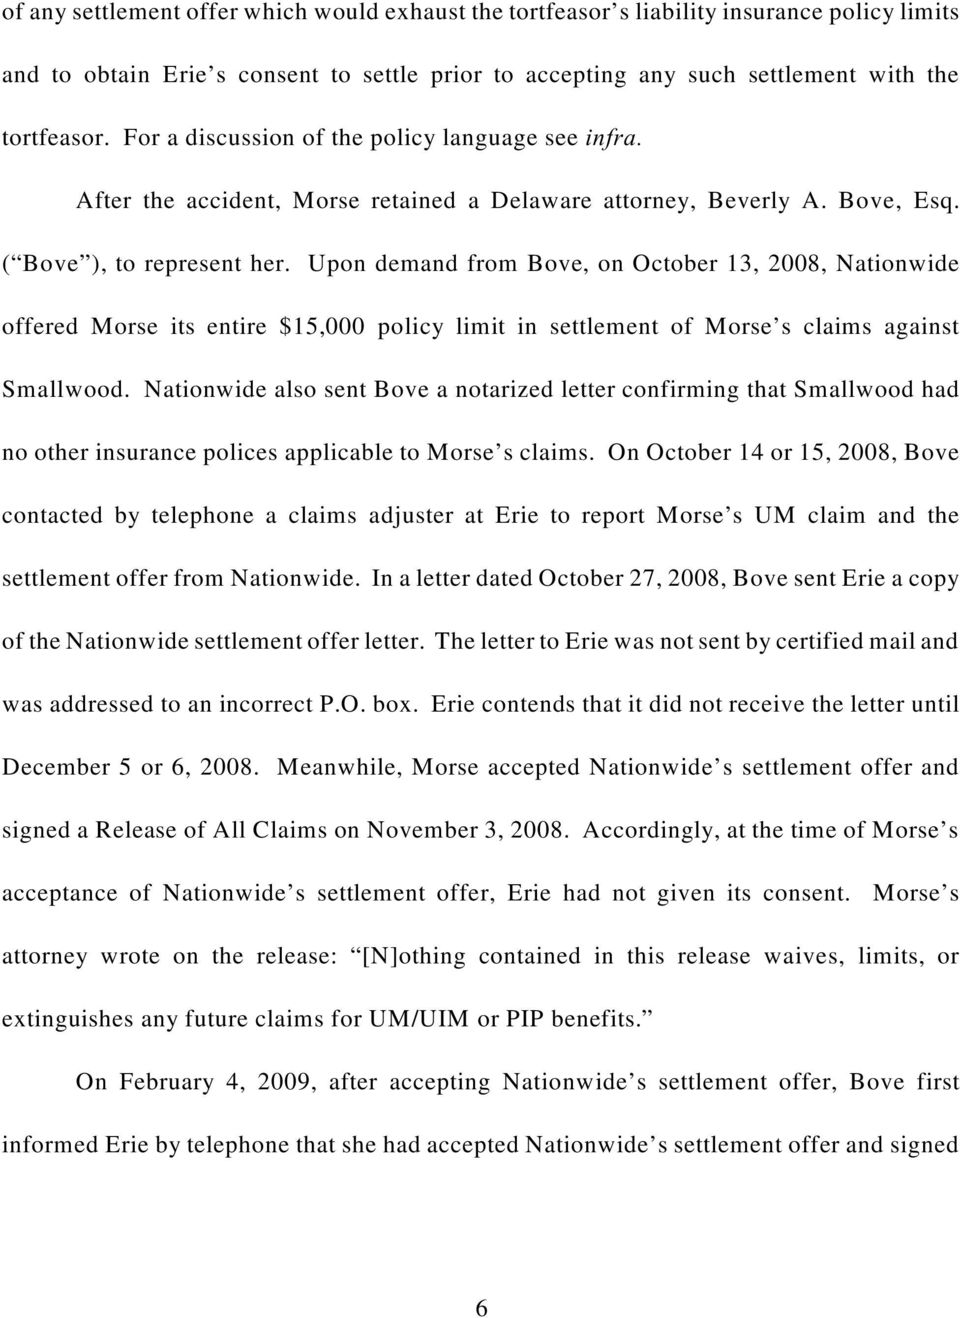 Upon demand from Bove, on October 13, 2008, Nationwide offered Morse its entire $15,000 policy limit in settlement of Morse s claims against Smallwood.